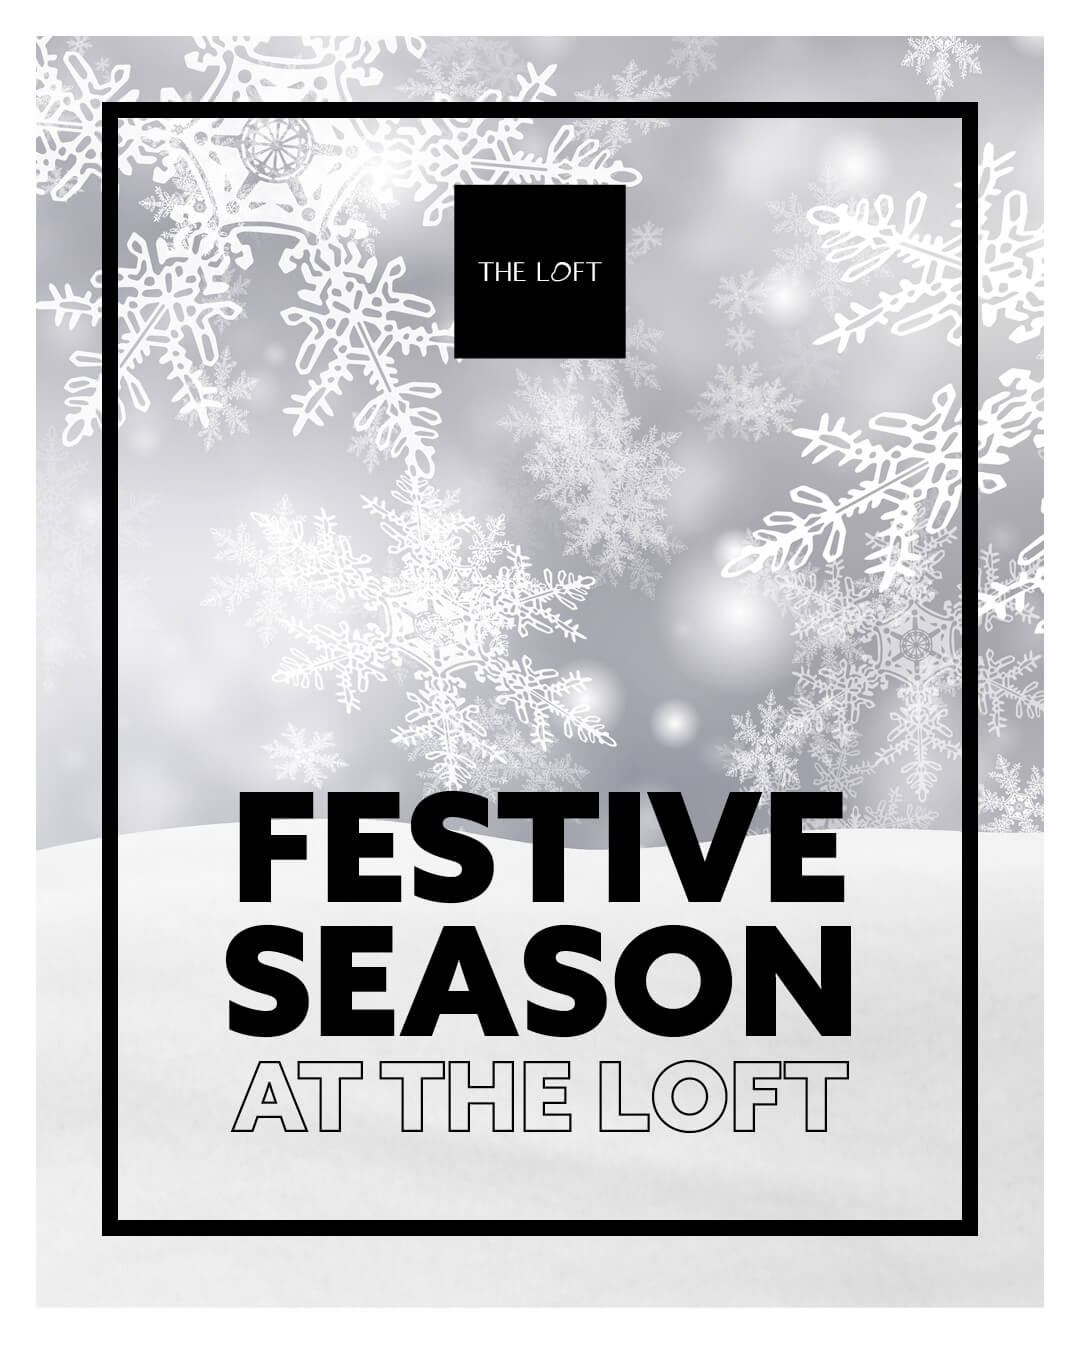 Festive Season at The Loft